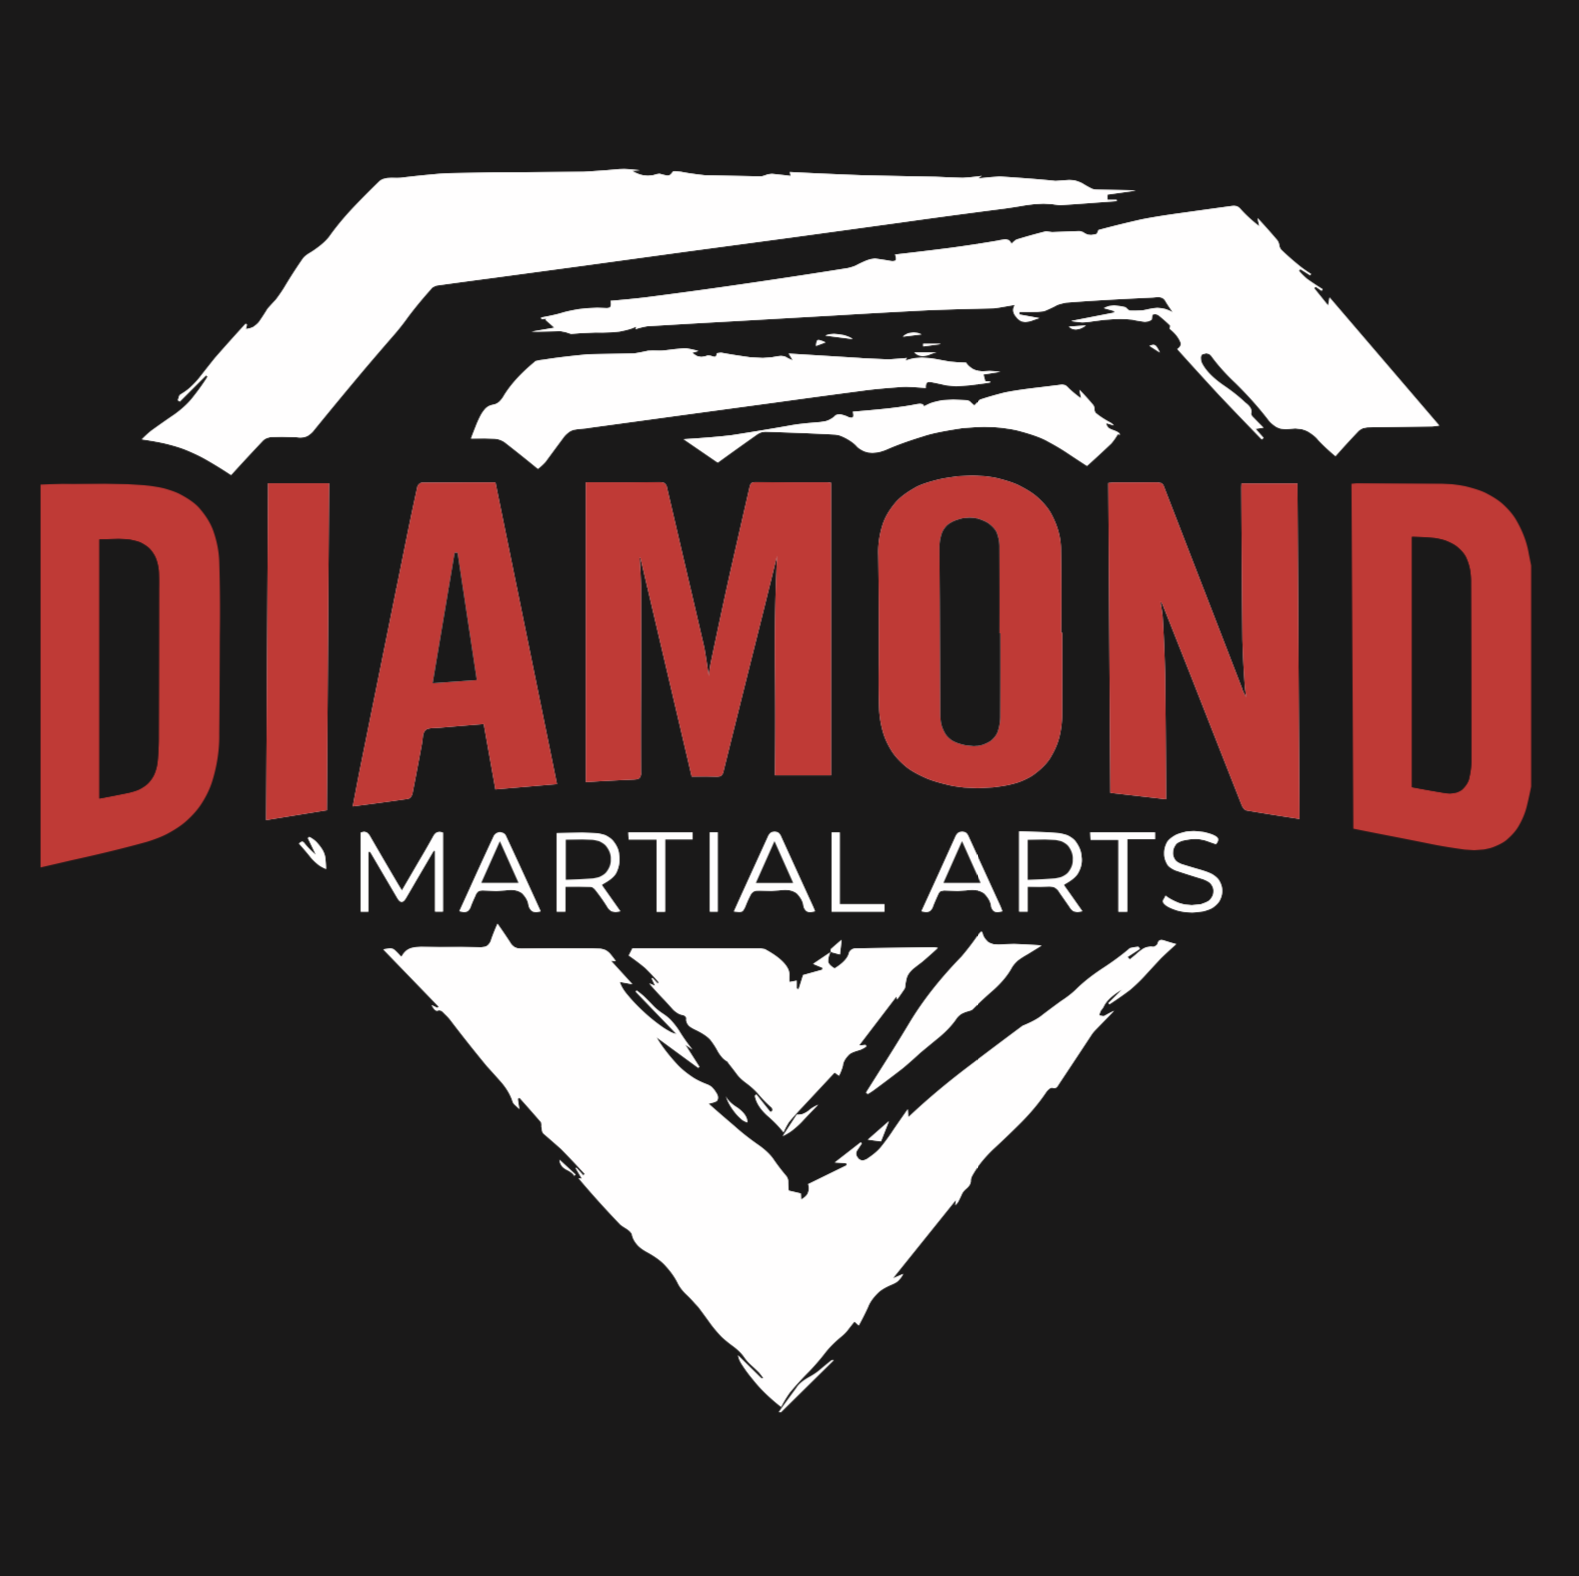 Diamond Martial Arts